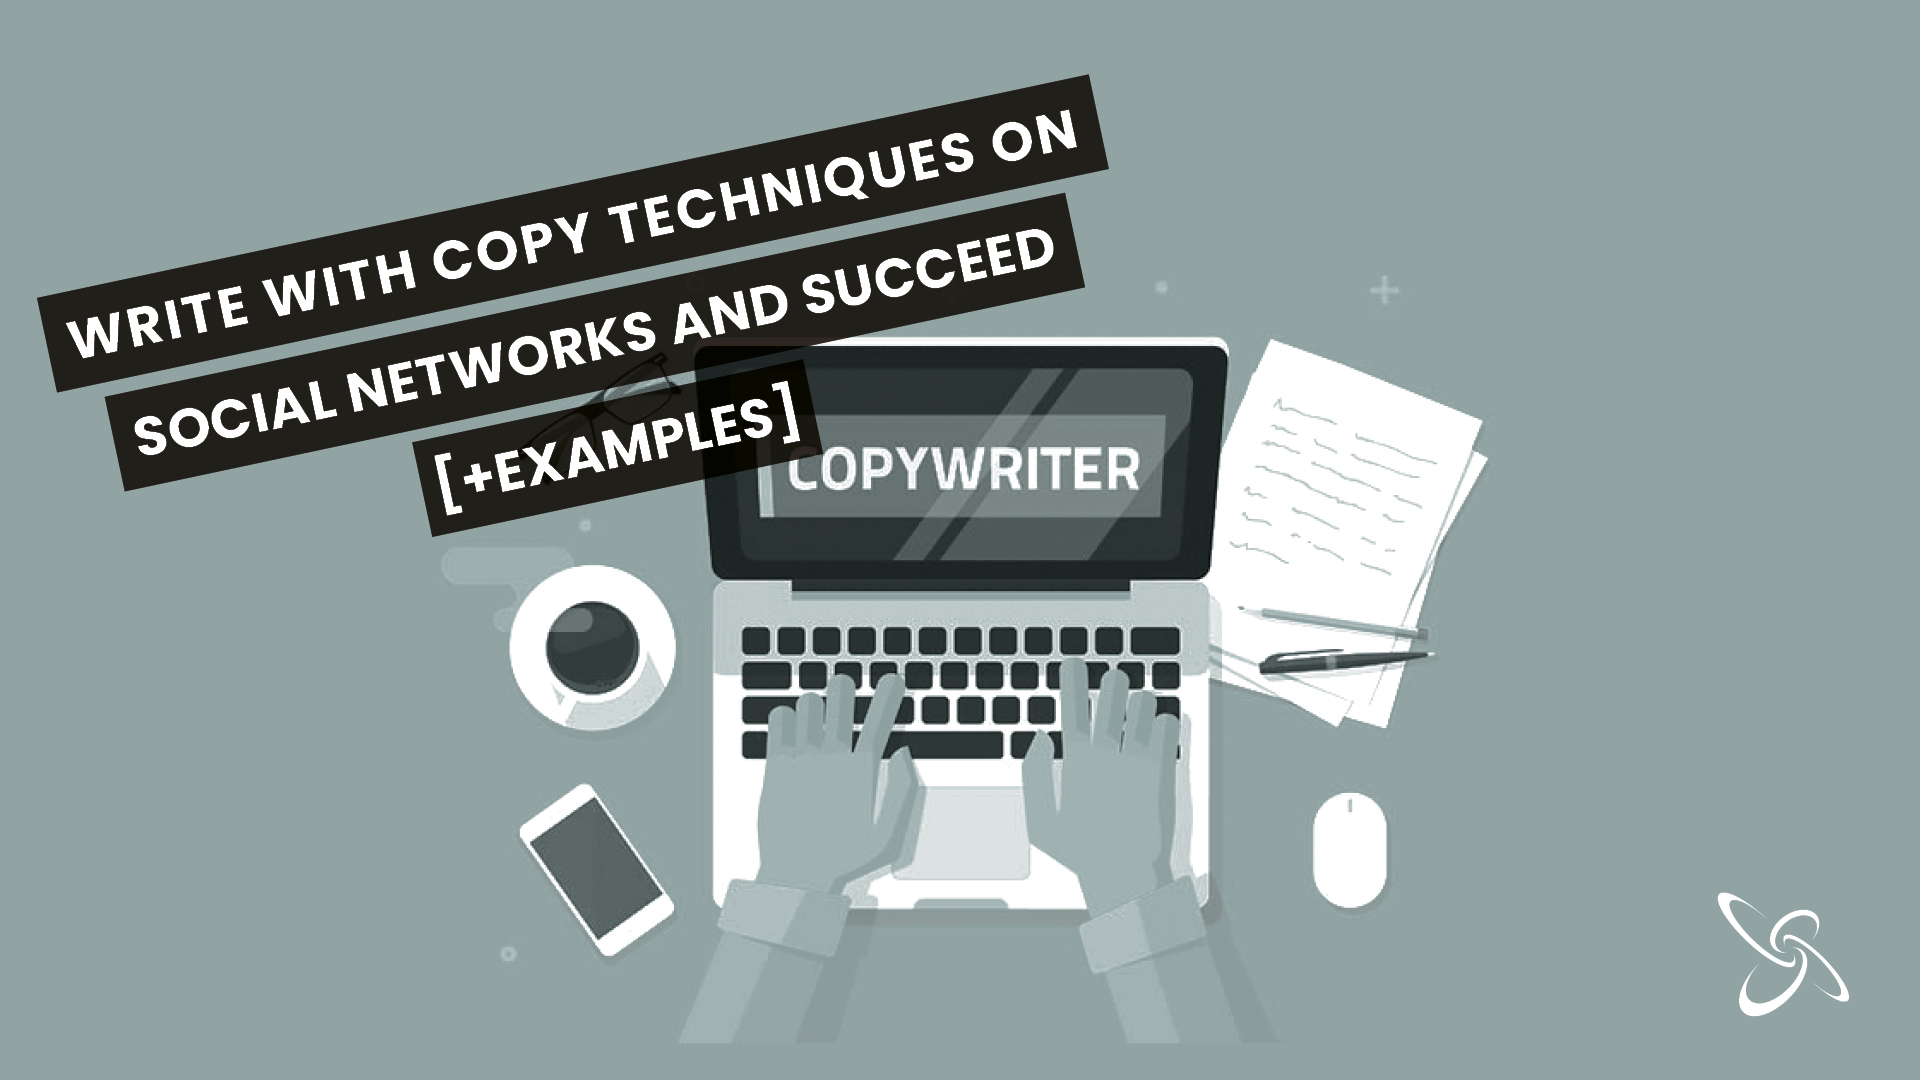 Write with copy techniques on social networks and succeed